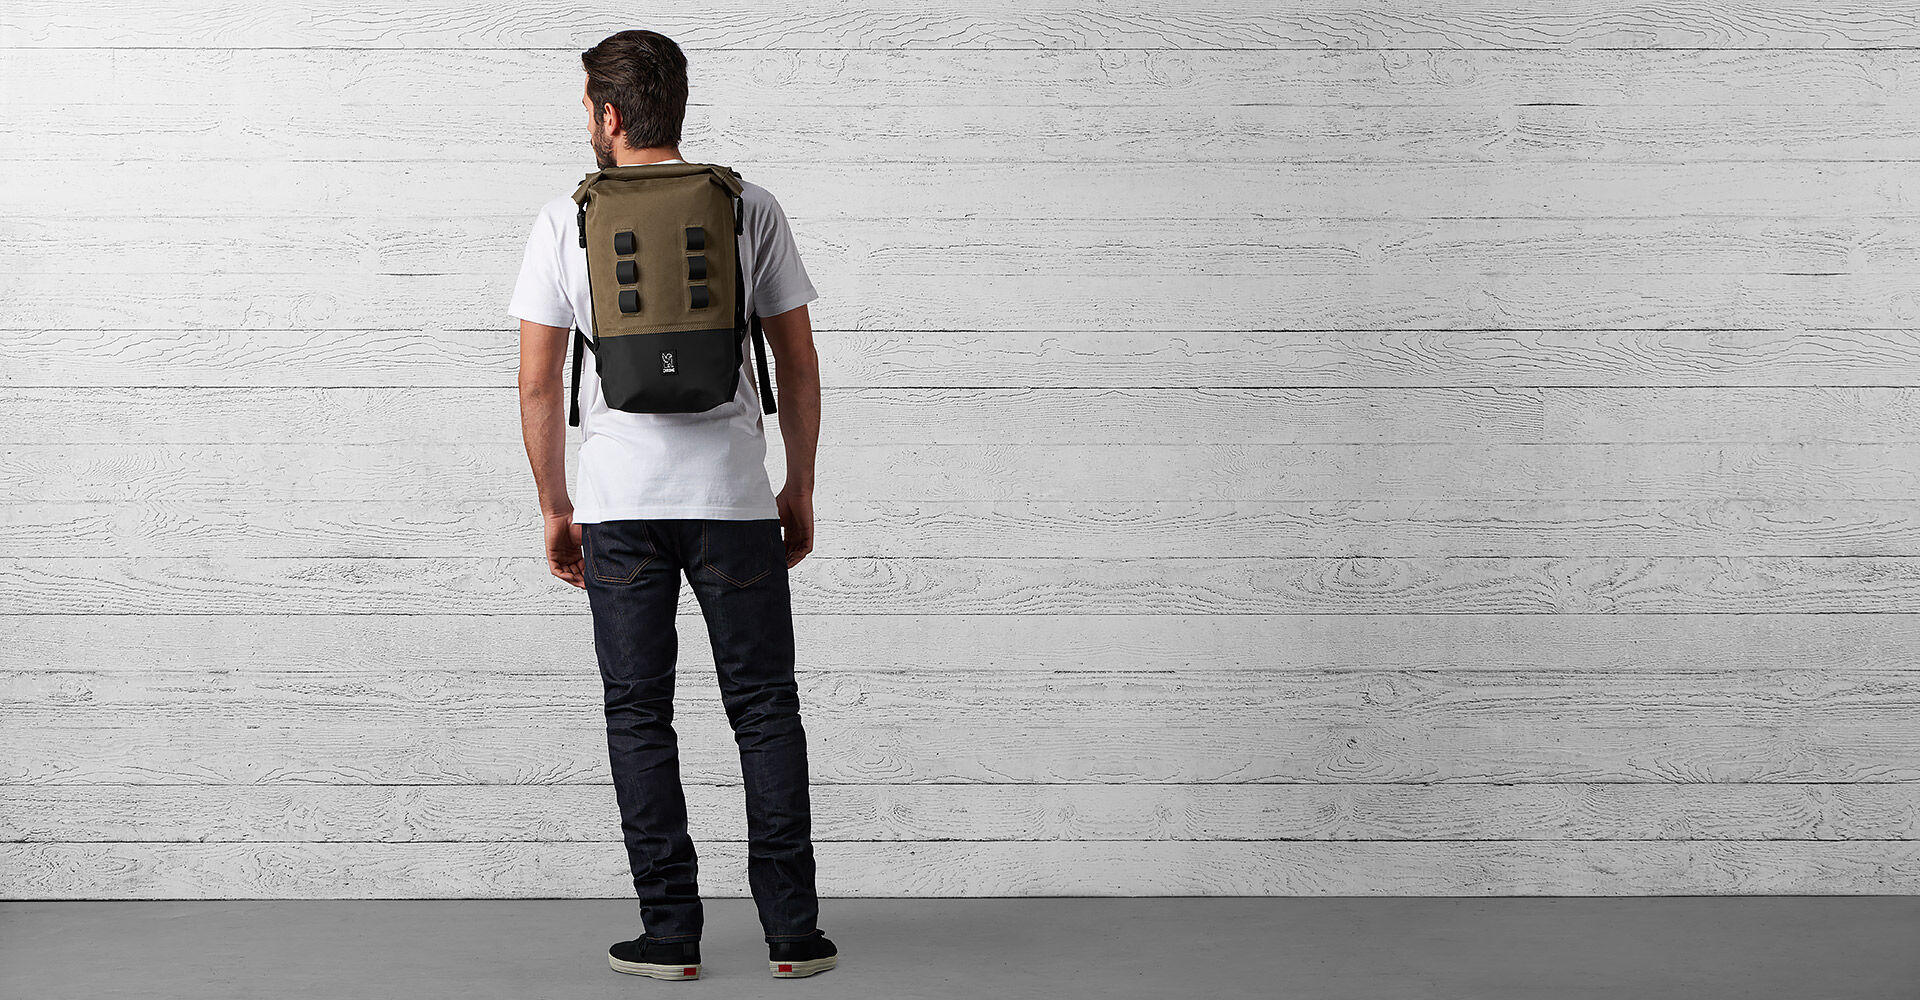 Urban Ex Rolltop 18L Backpack in Ranger / Black - wide view.